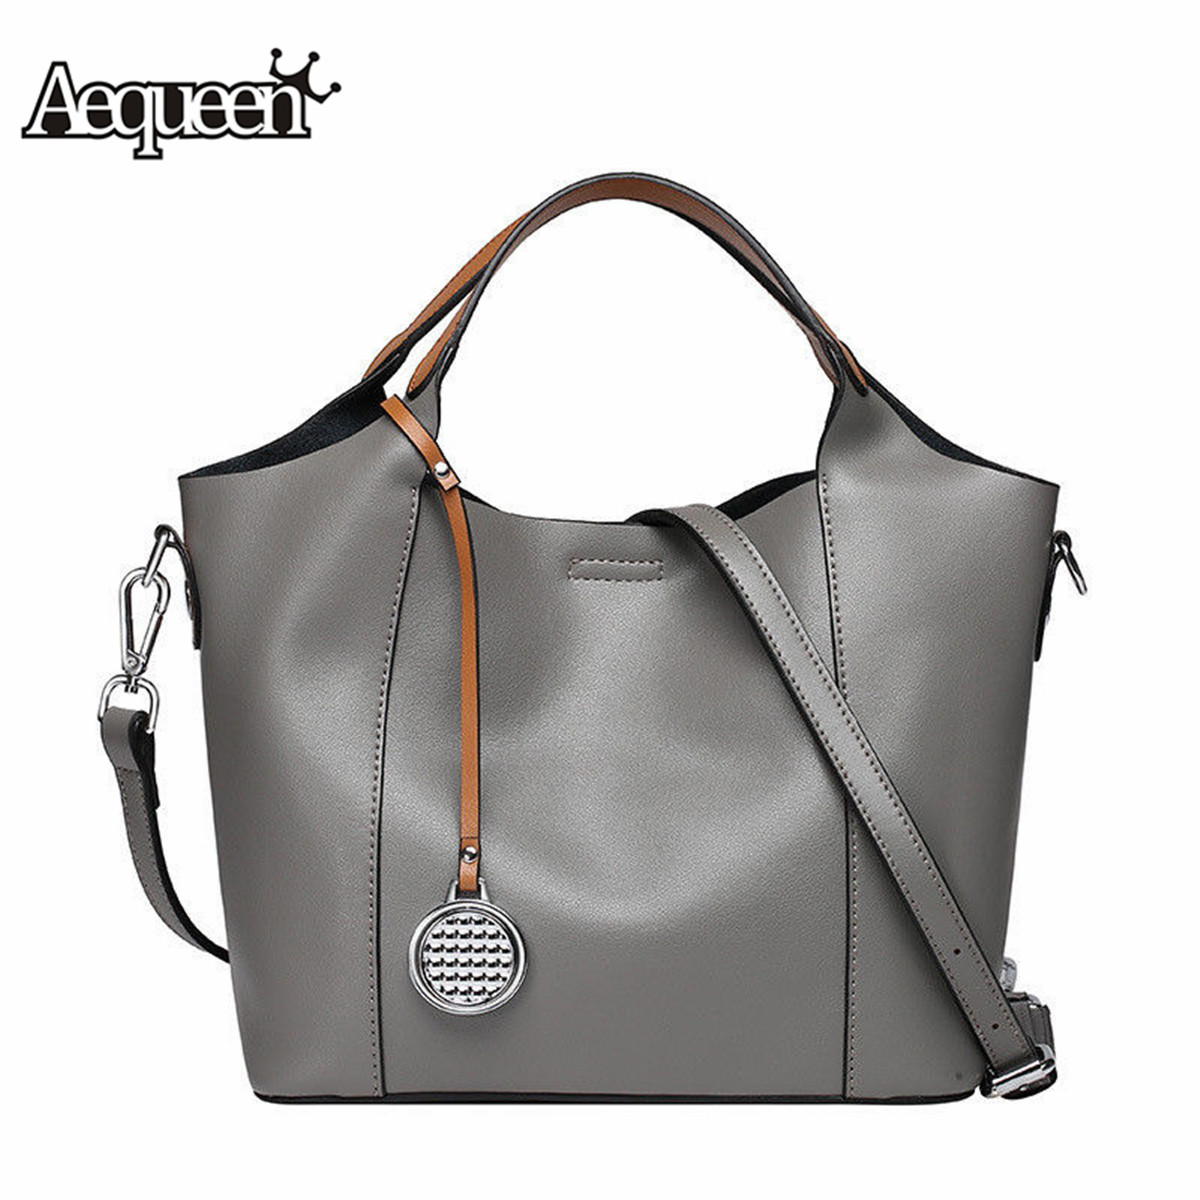 Female Bag Womens 100% Genuine Leather Bags Handbags Crossbody Bags For Women Shoulder Bags Genuine Leather Bolsa Feminina ToteFemale Bag Womens 100% Genuine Leather Bags Handbags Crossbody Bags For Women Shoulder Bags Genuine Leather Bolsa Feminina Tote